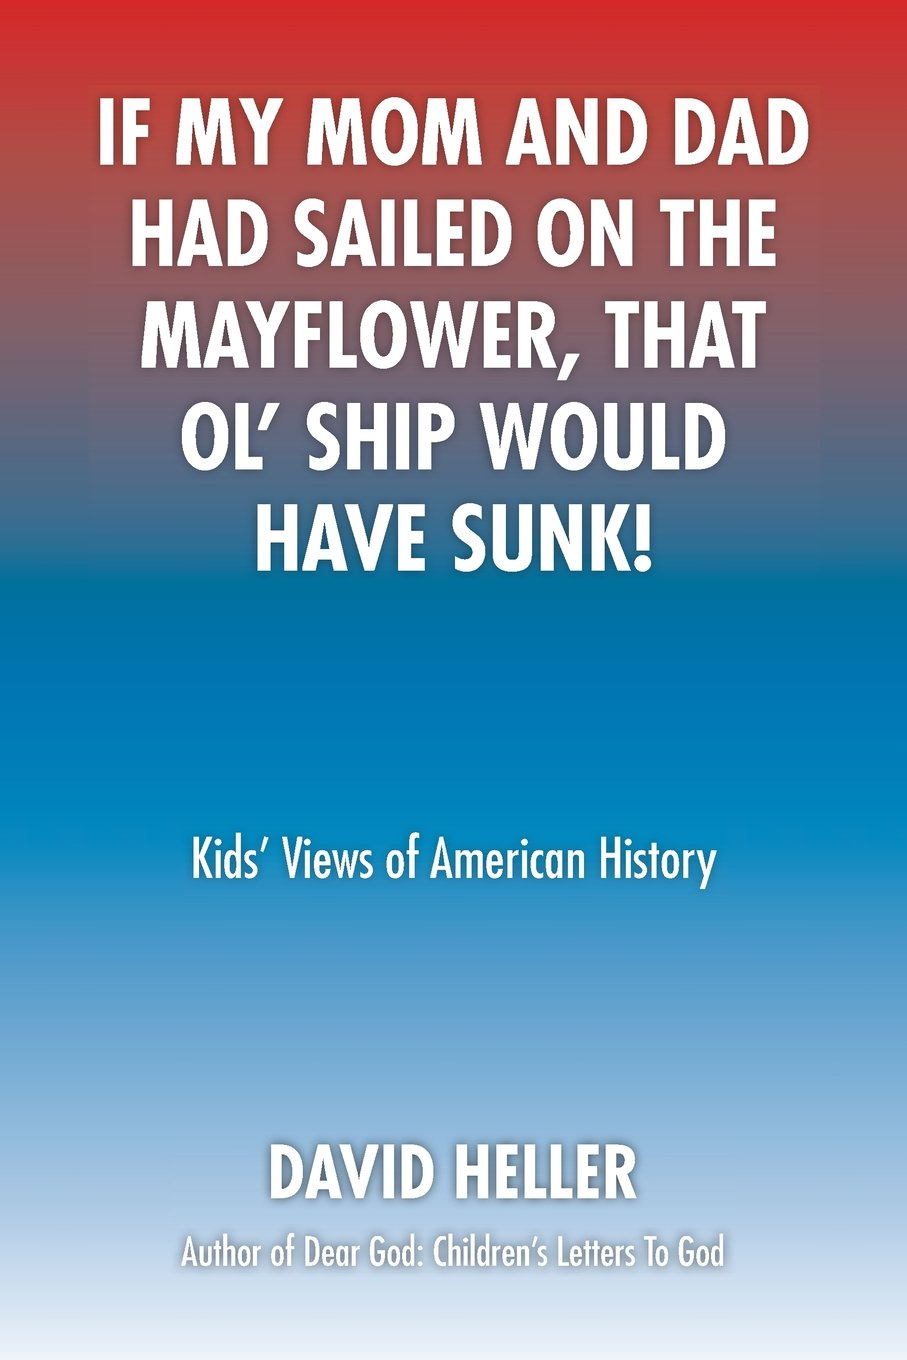 Download If My Mom And Dad Had Sailed On The Mayflower, That Ol' Ship Would Have Sunk!: Kids' Views of American History pdf epub